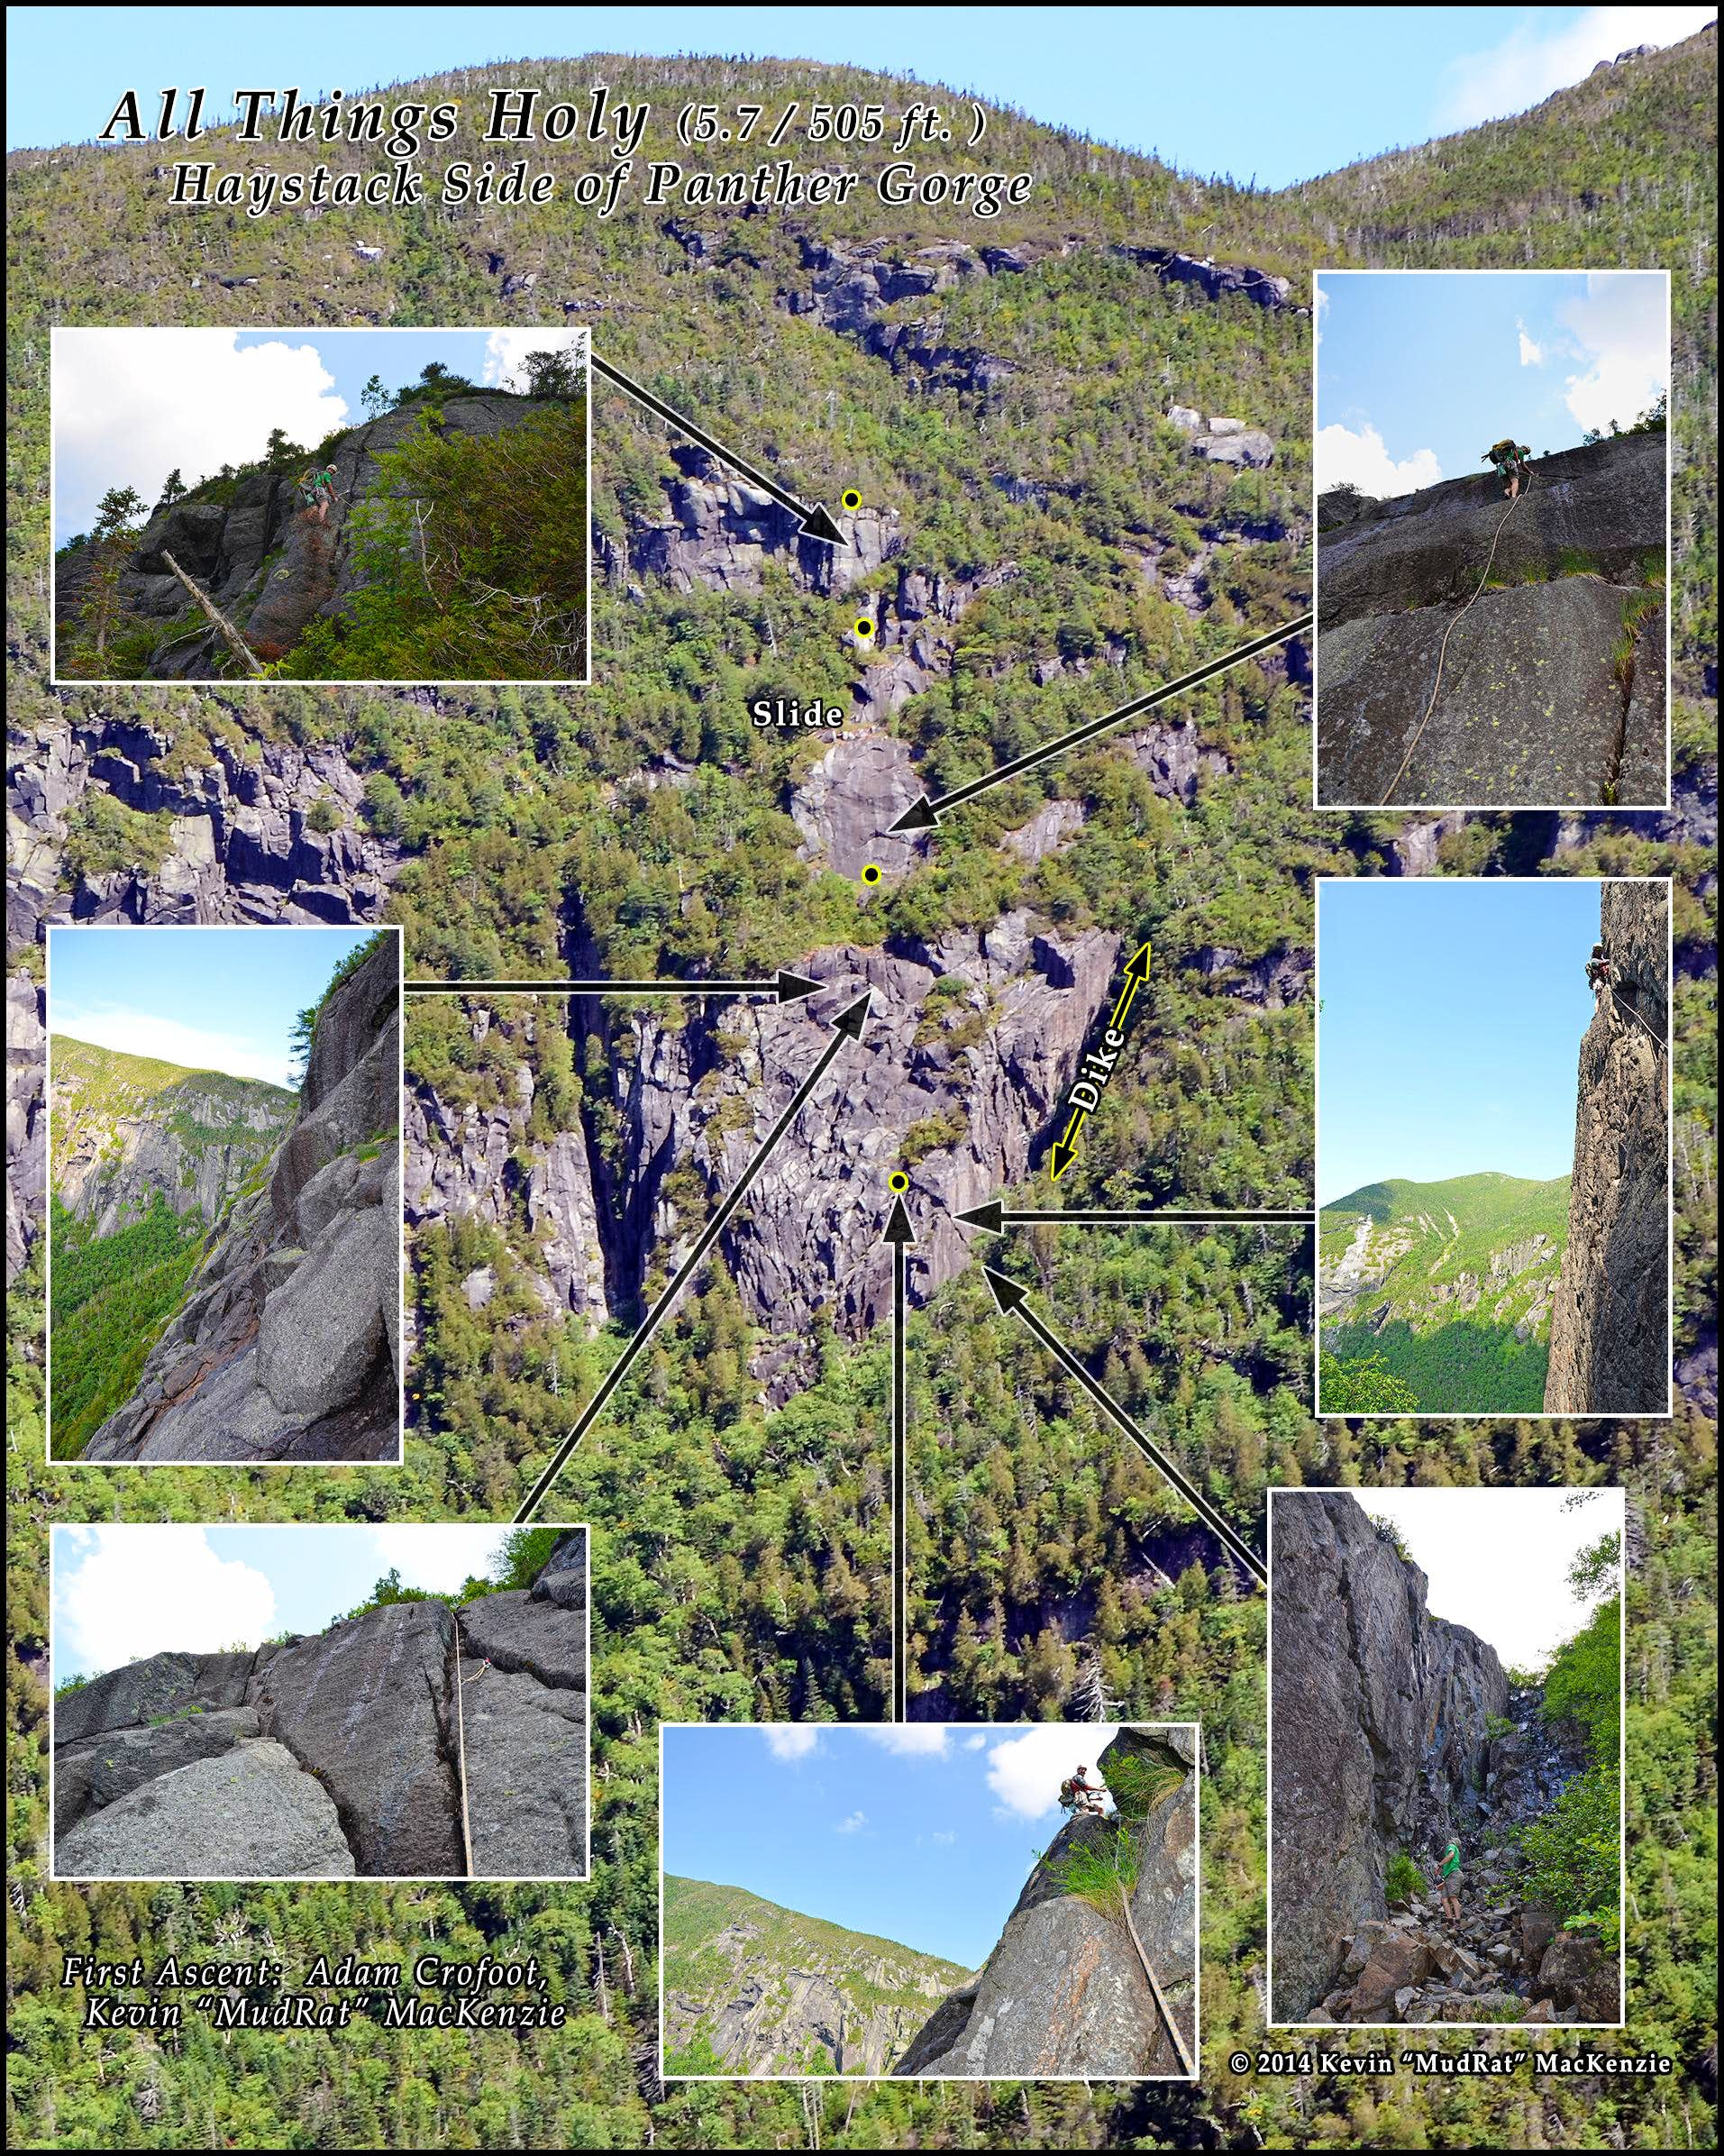 All Things Holy in Panther Gorge: A New Route on the Haystack Side